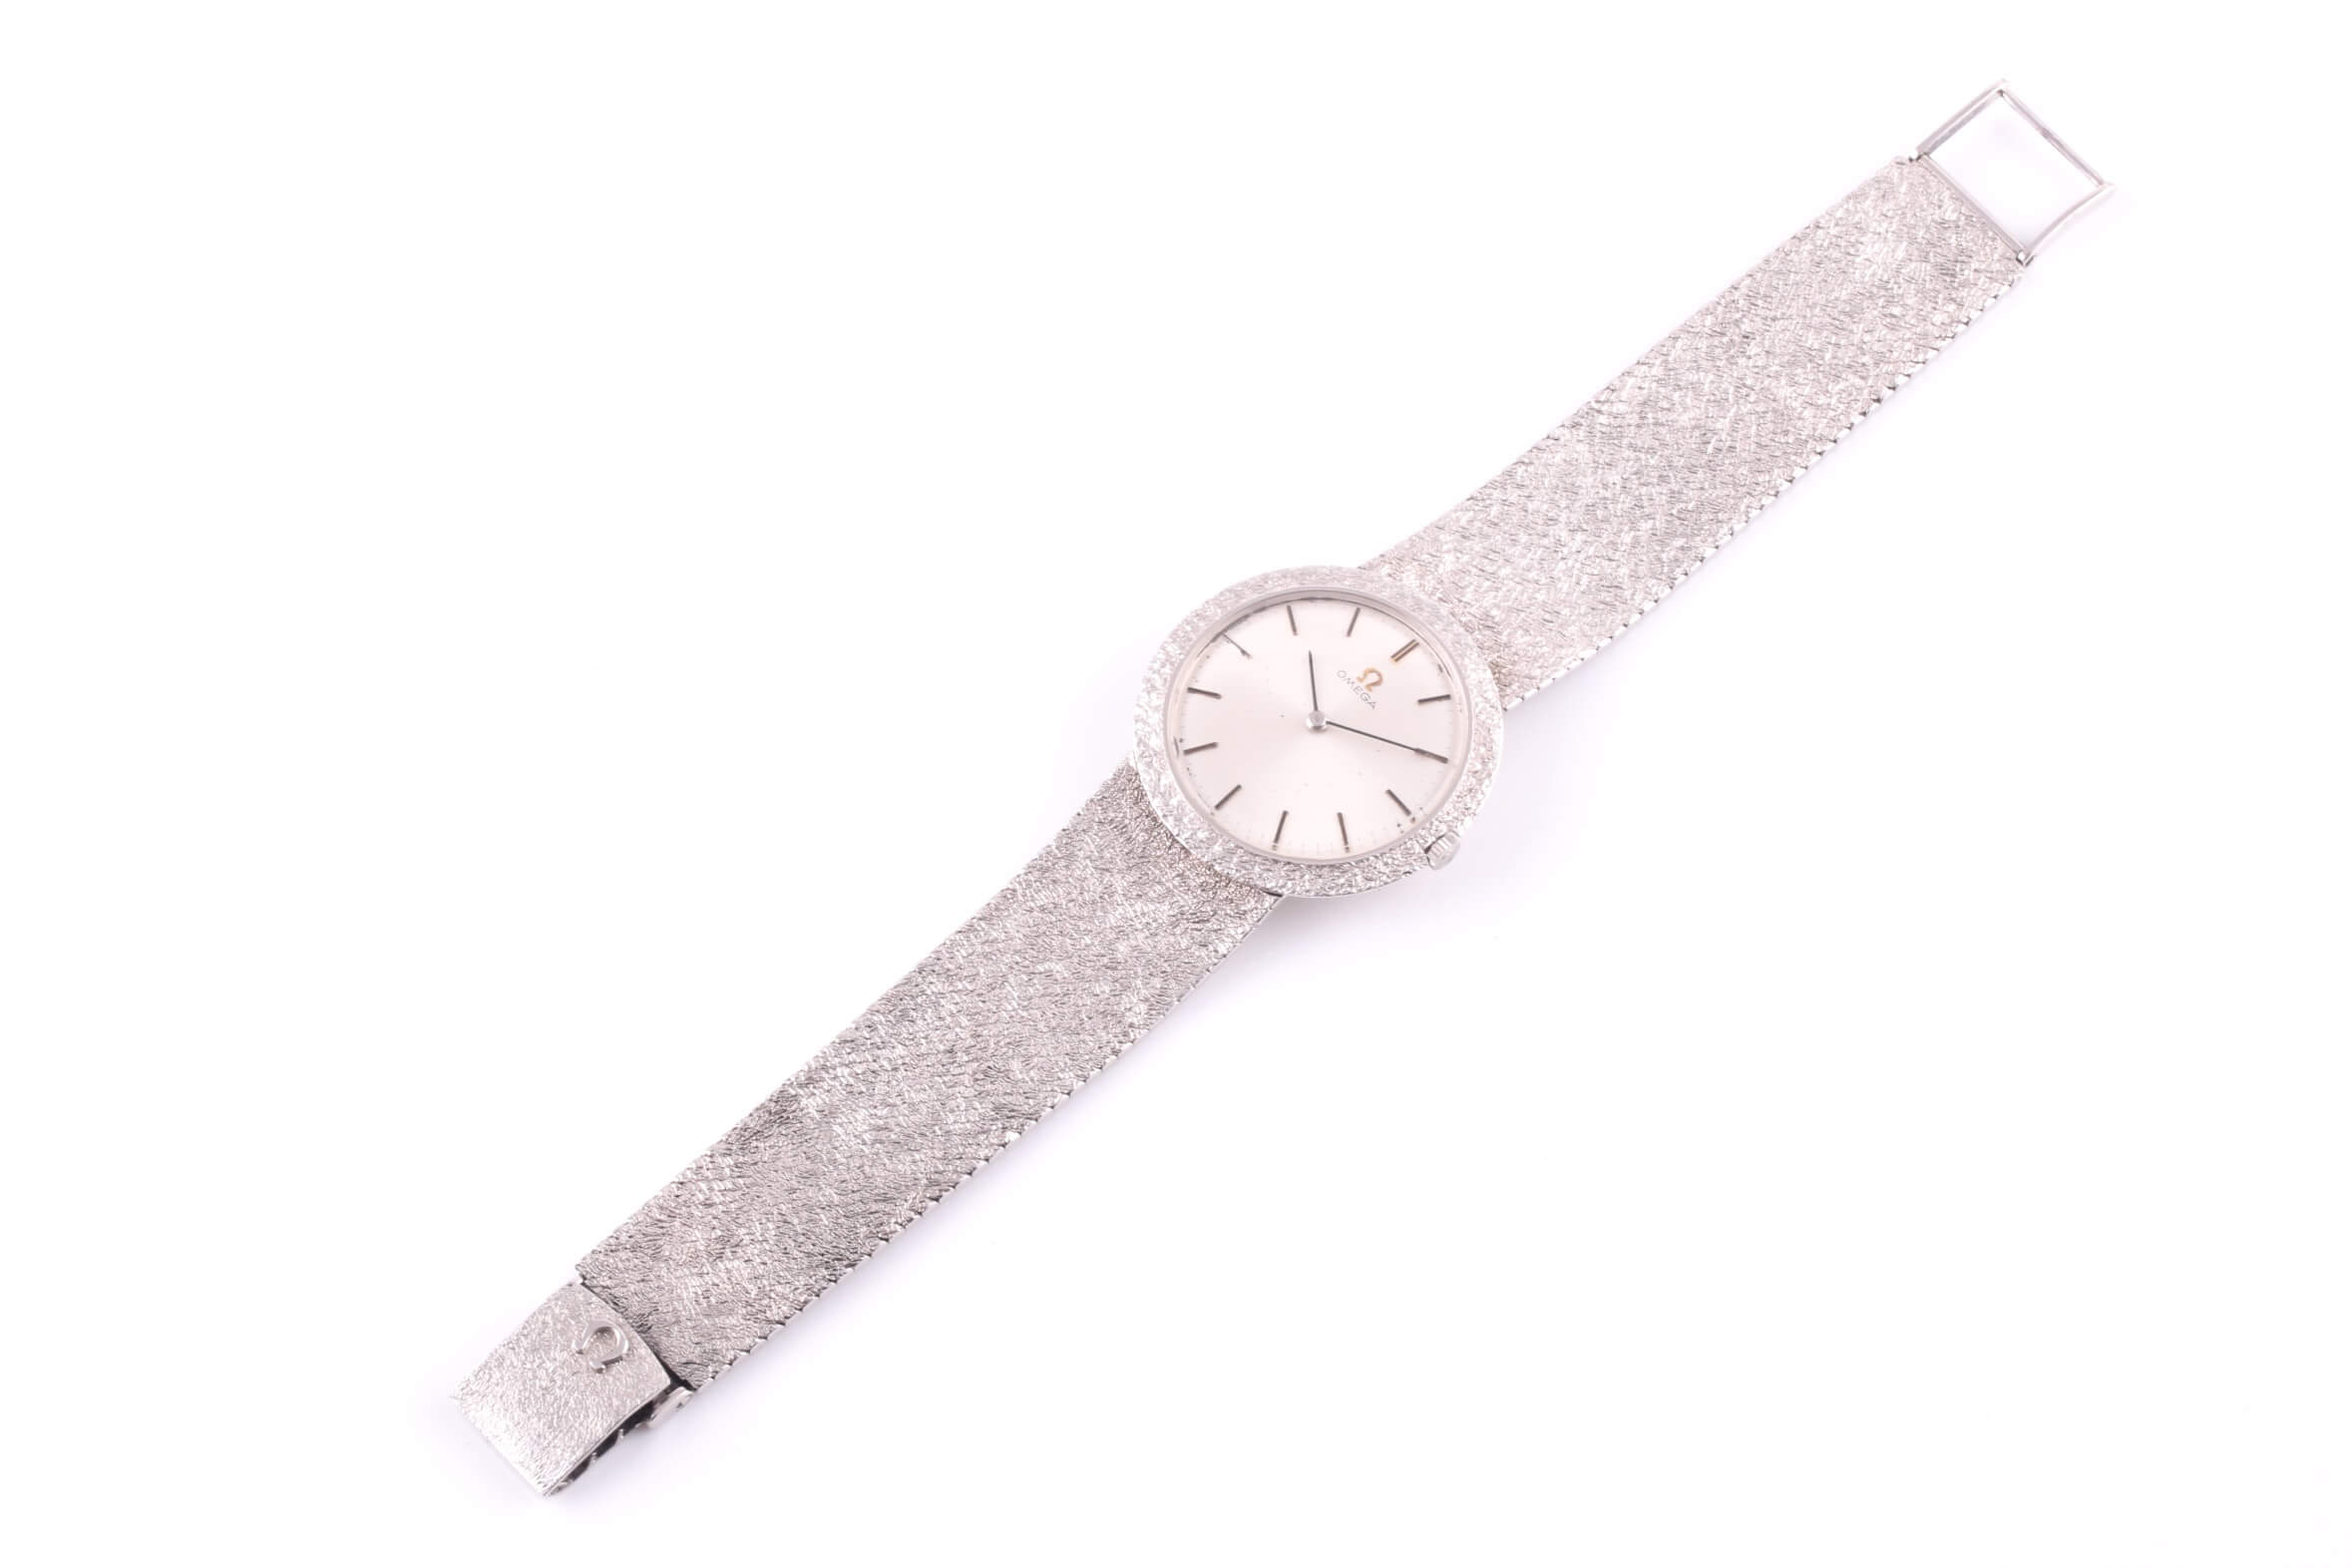 A white metal mens Omega watch